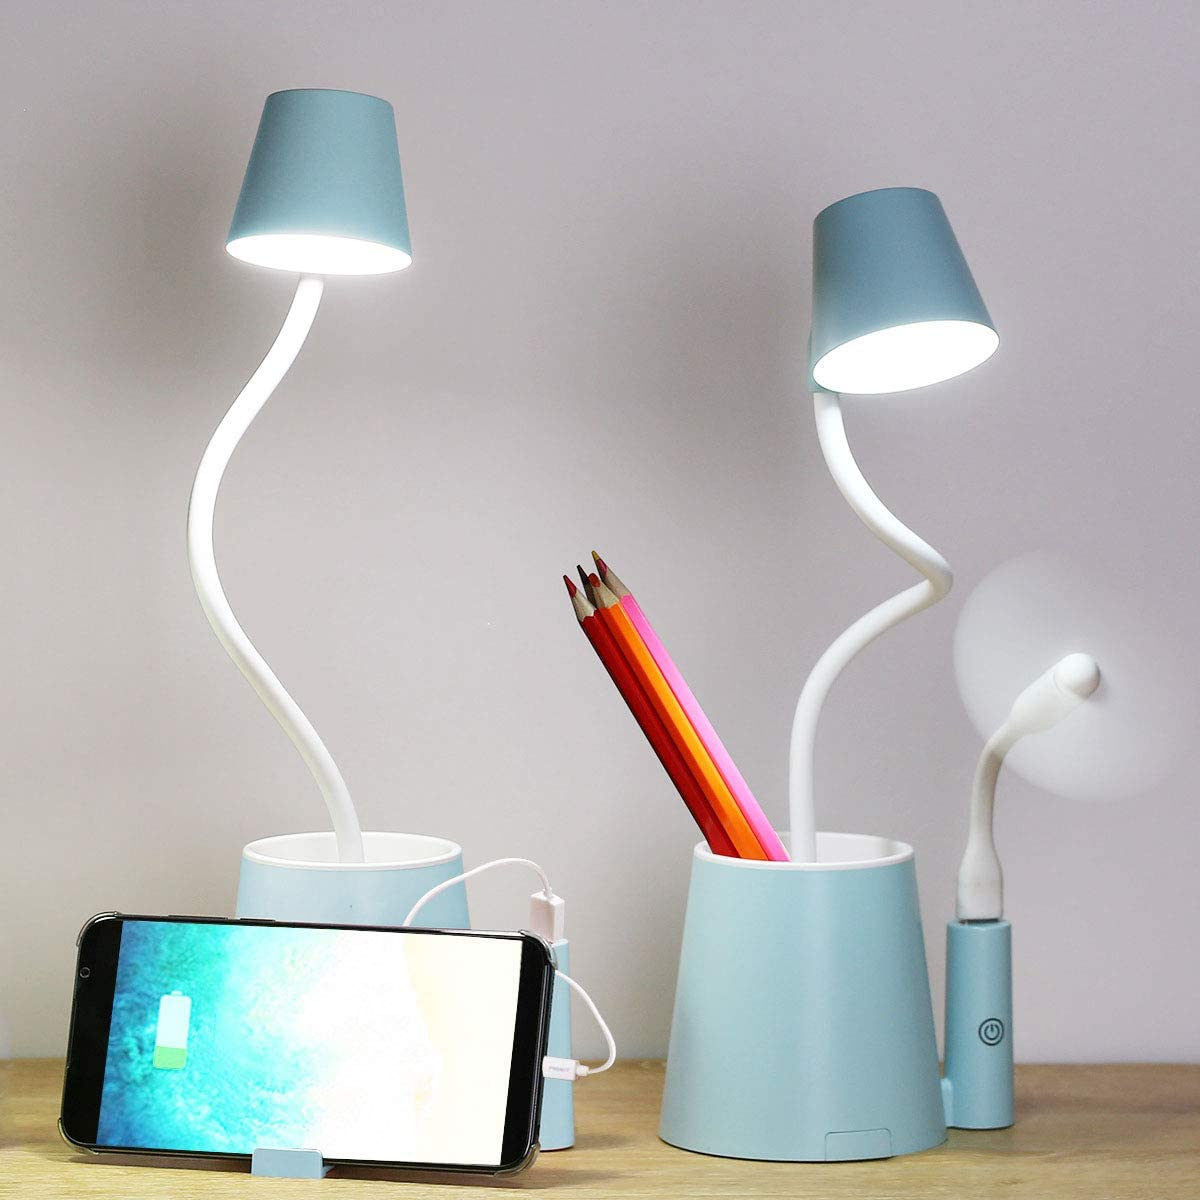 Desk Lamp Kids Small USB Rechargeable Student Cute Led Eye Protection Table Lamp Dimmable Touch Control, Storage with Phone & Pen Holder for Child, Girls, Boys, Gifts, Office, Home, Dorm, Room (Blue)